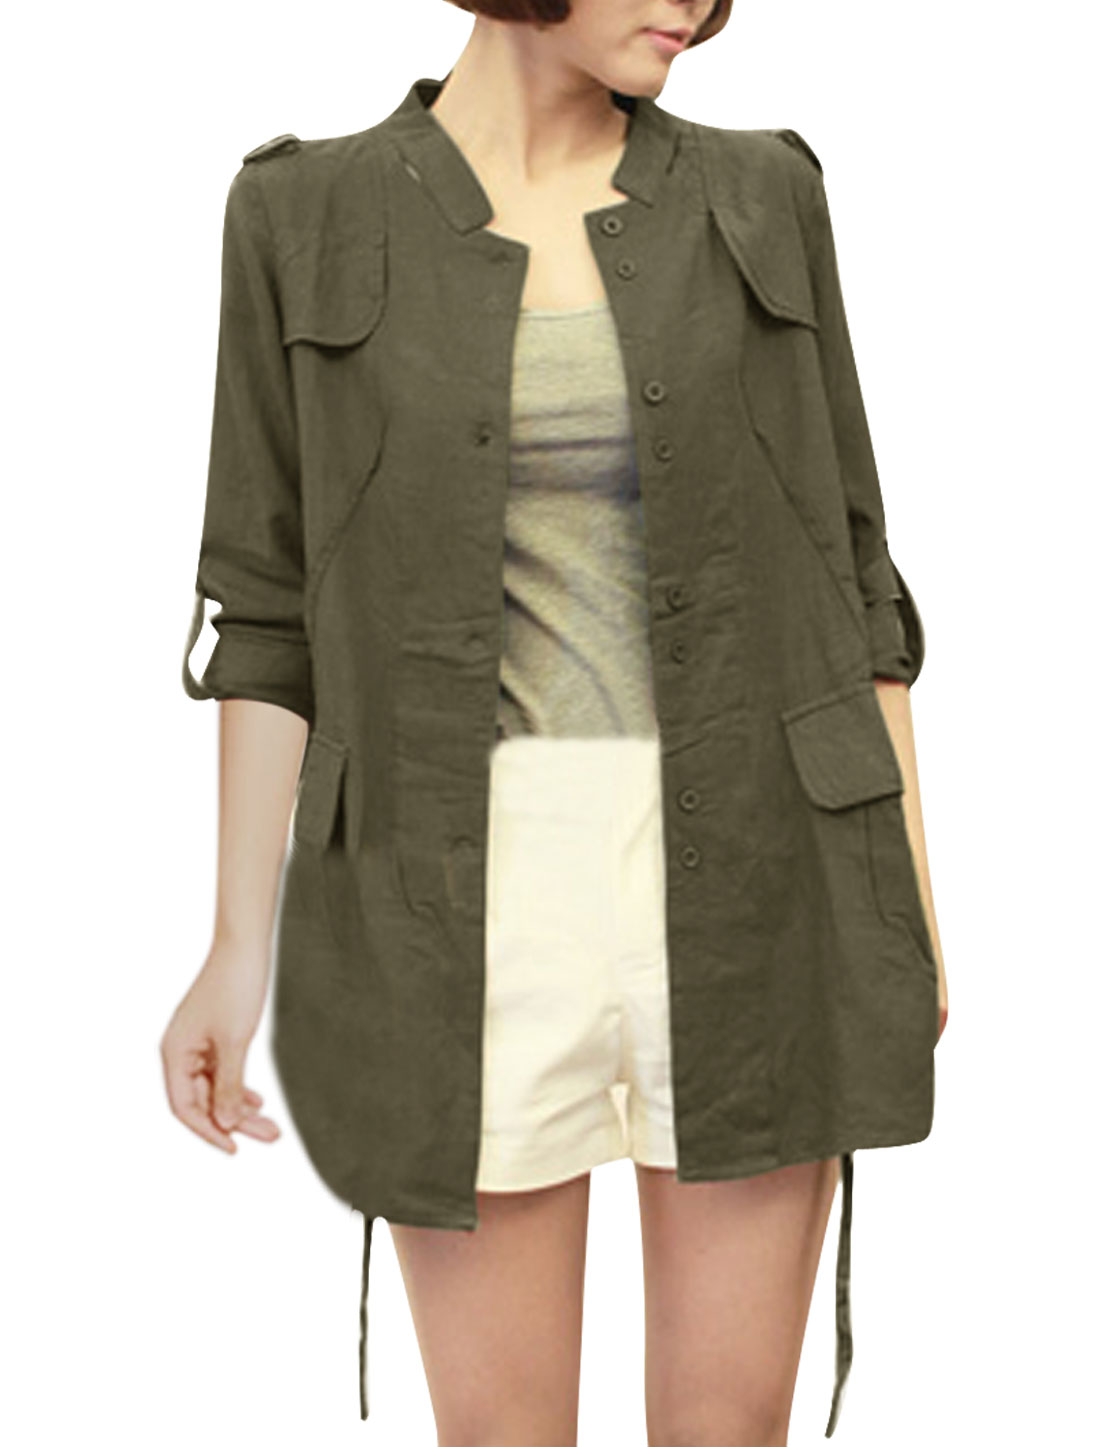 Women S Olive Green Roll Up Sleeve Stand Collar Button Closure Solid Jacket